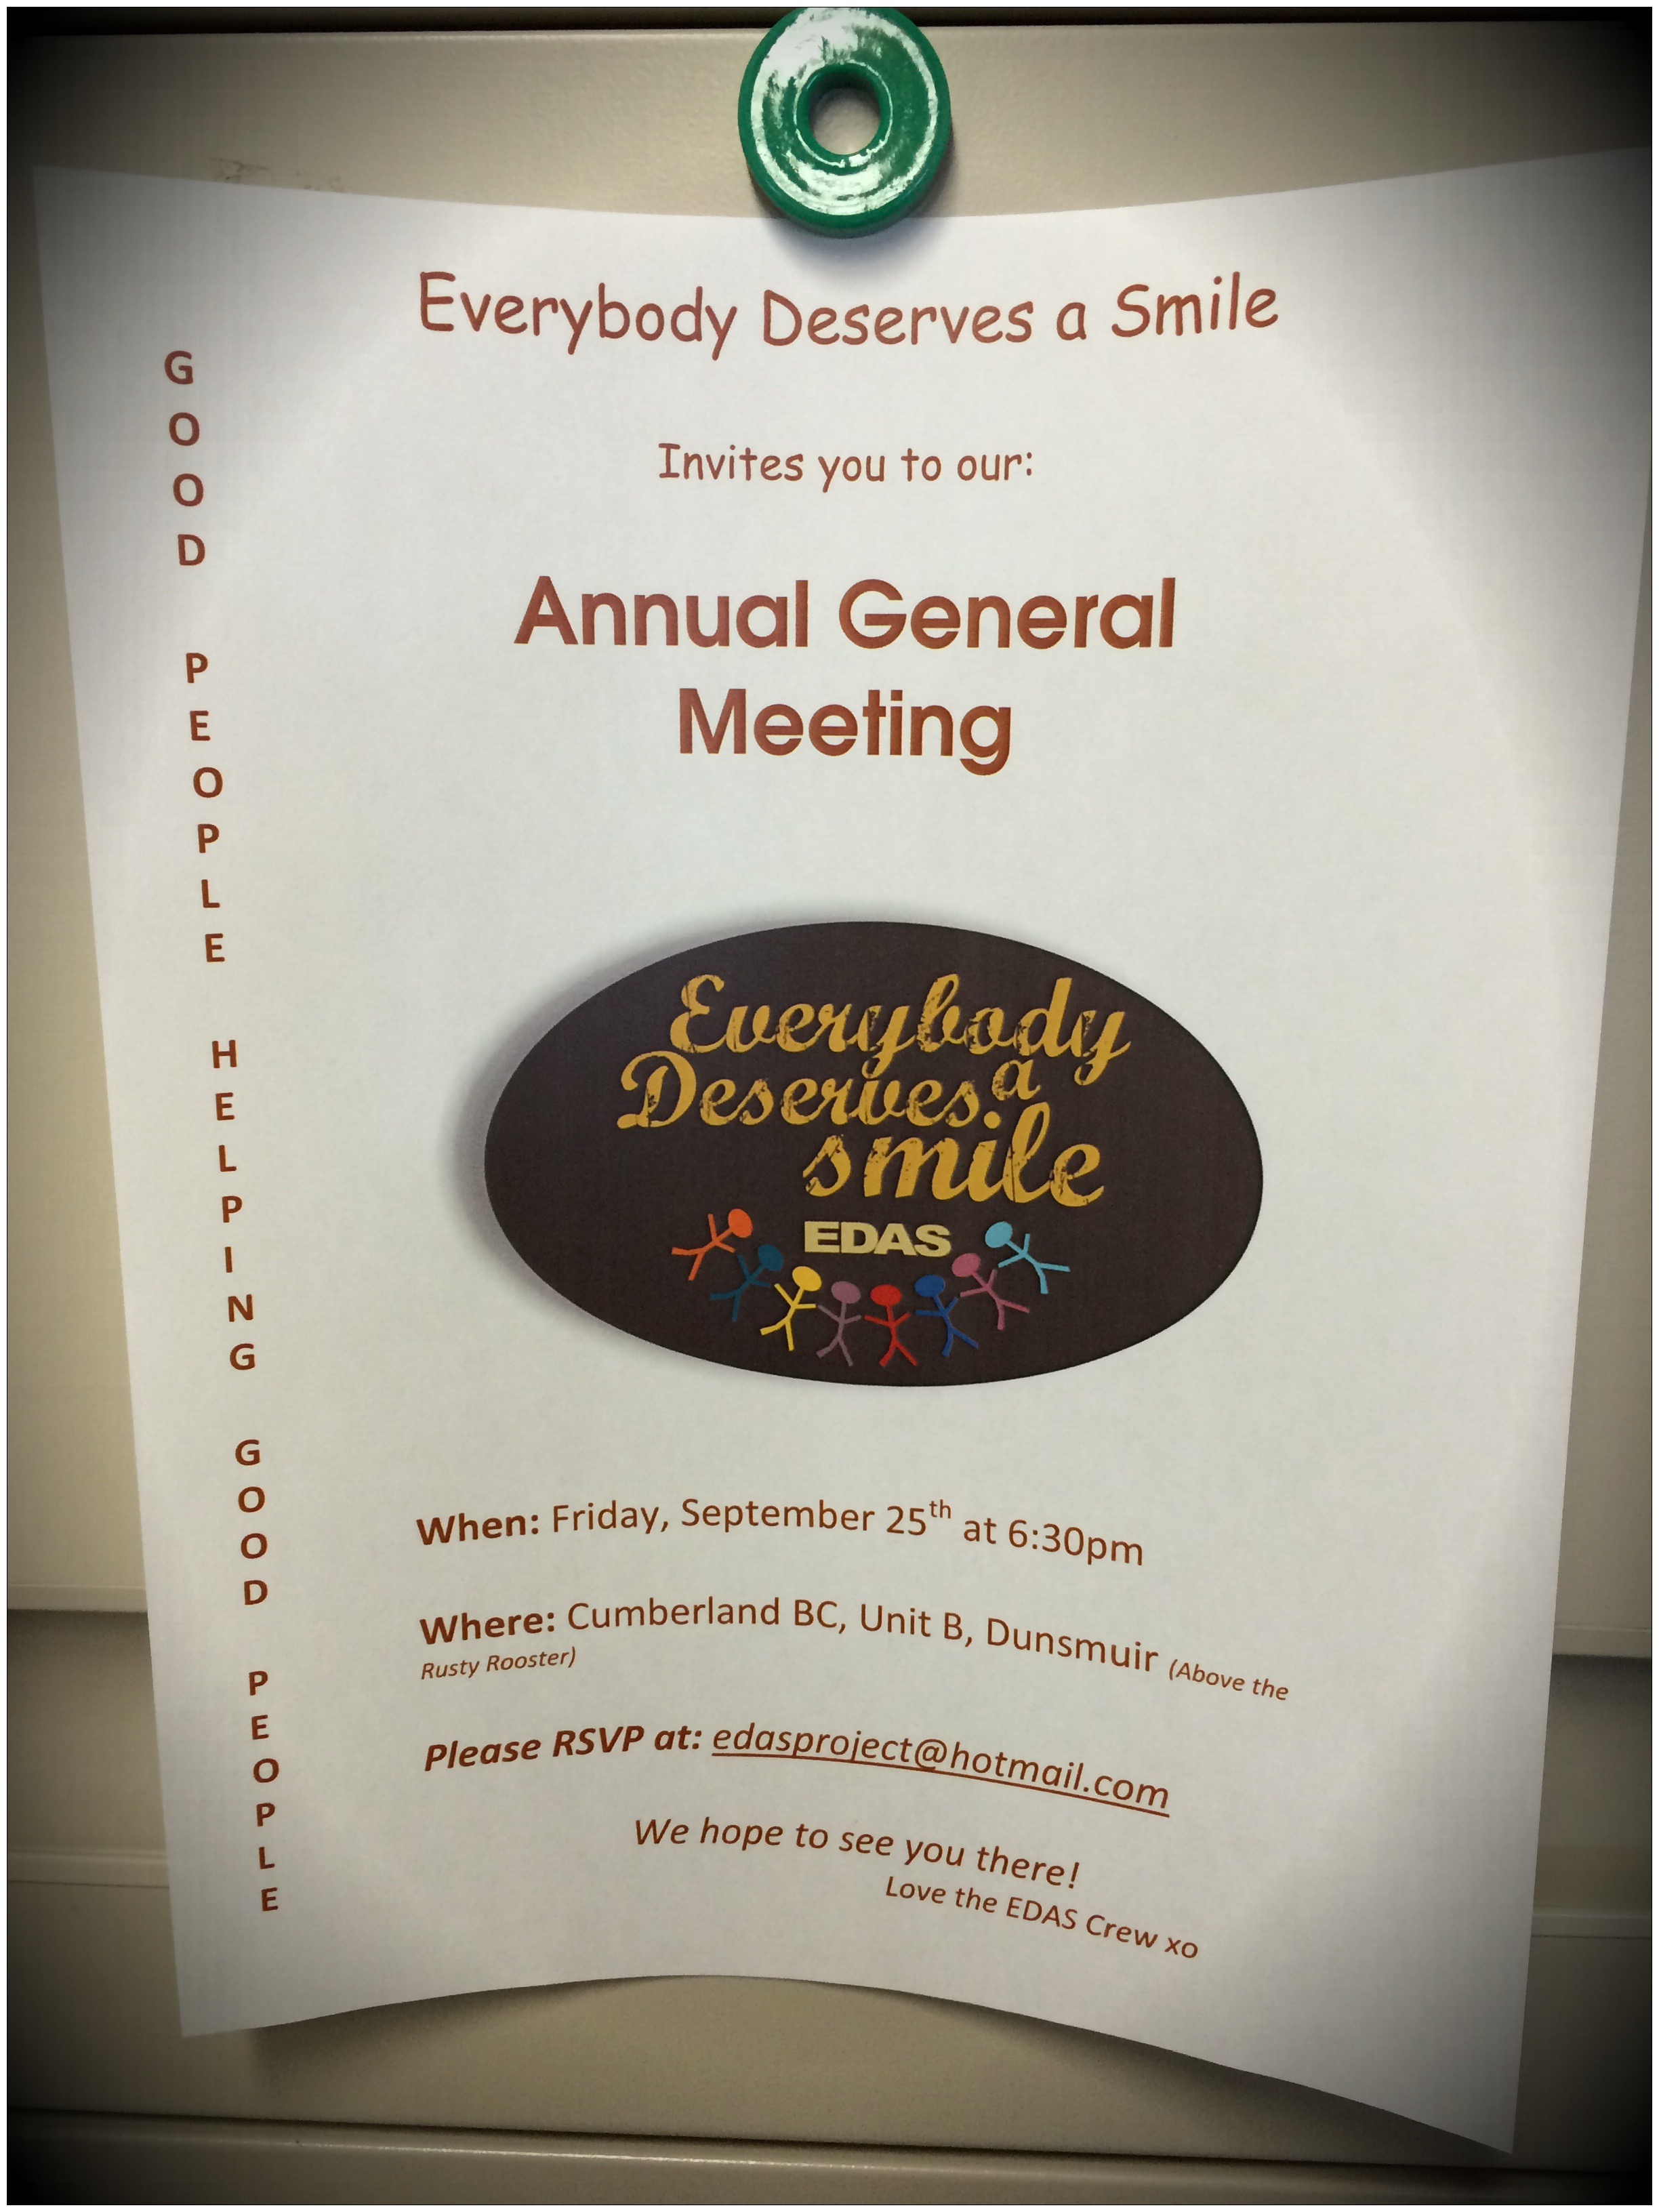 Everybody Deserves A Smile's AGM